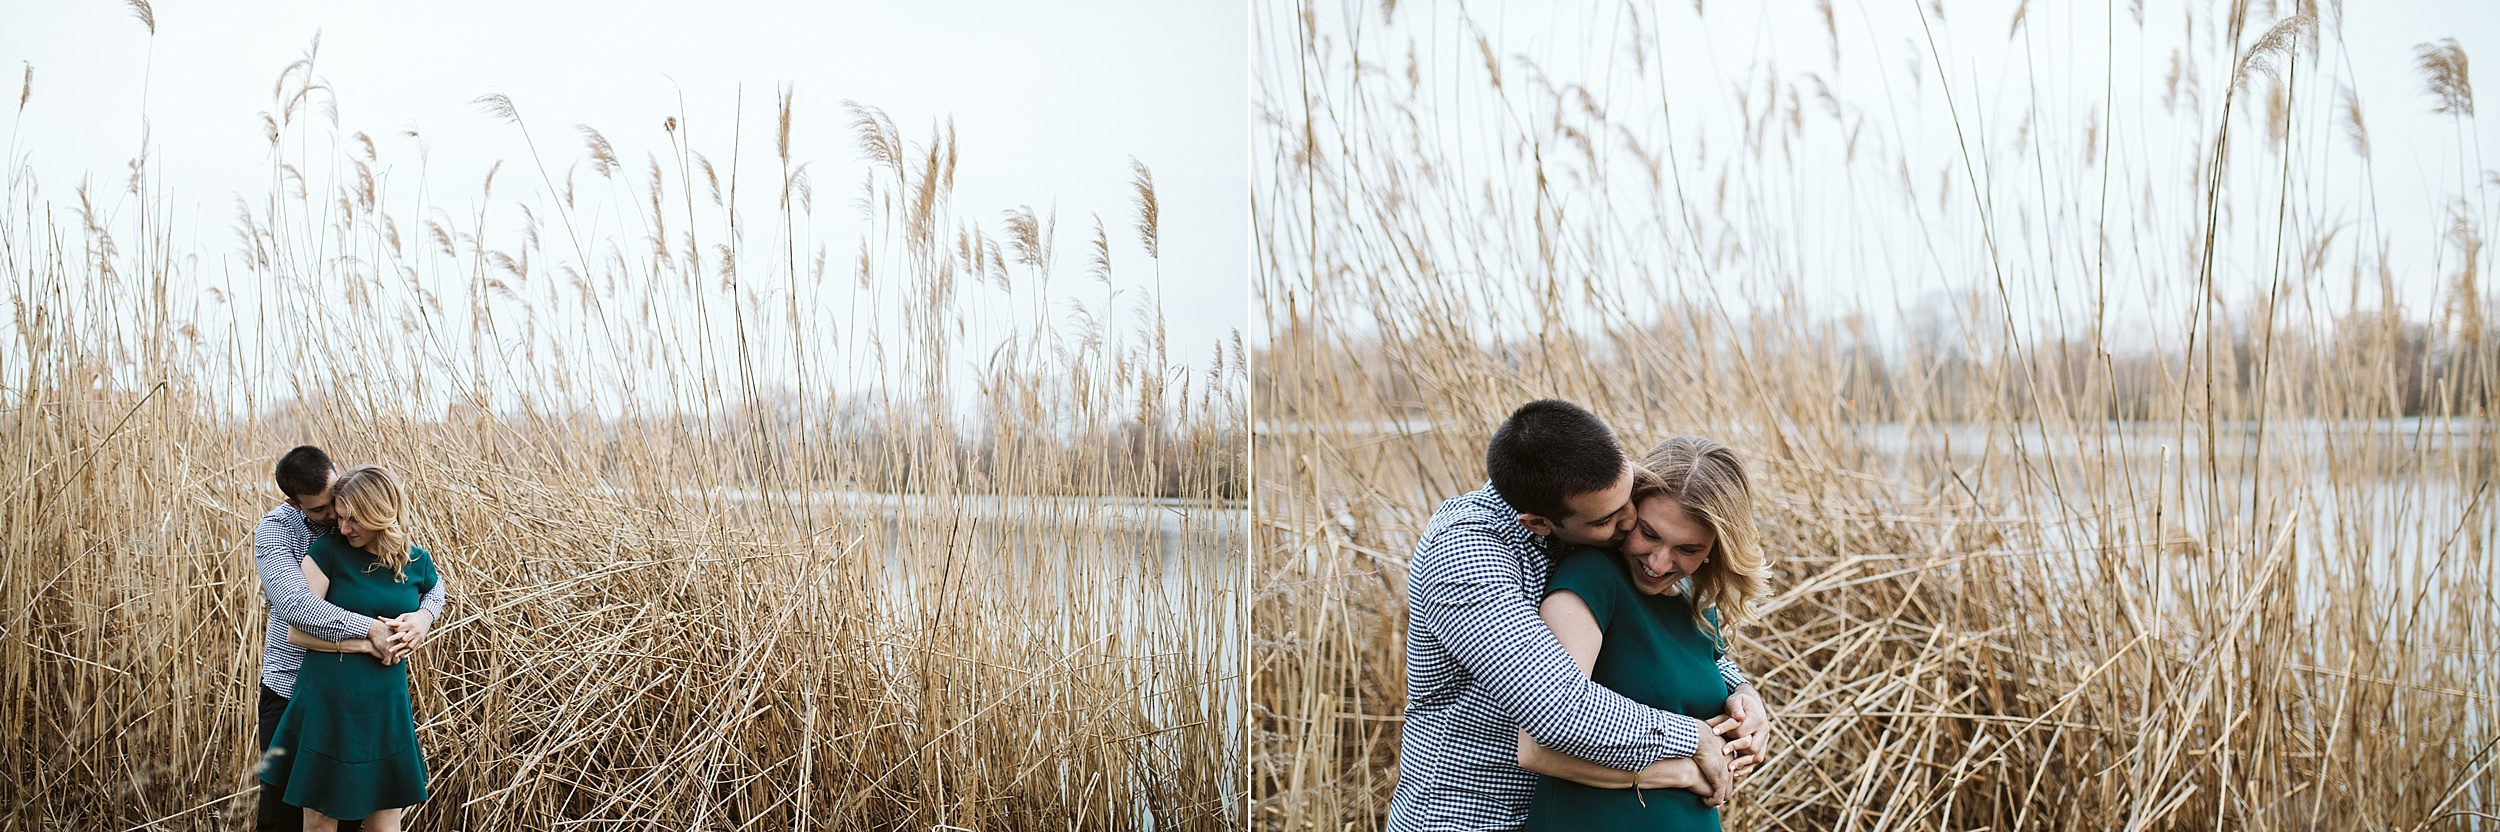 Allison Sullivan - Park Slope + Prospect Park Brooklyn Engagement Session 0014.JPG